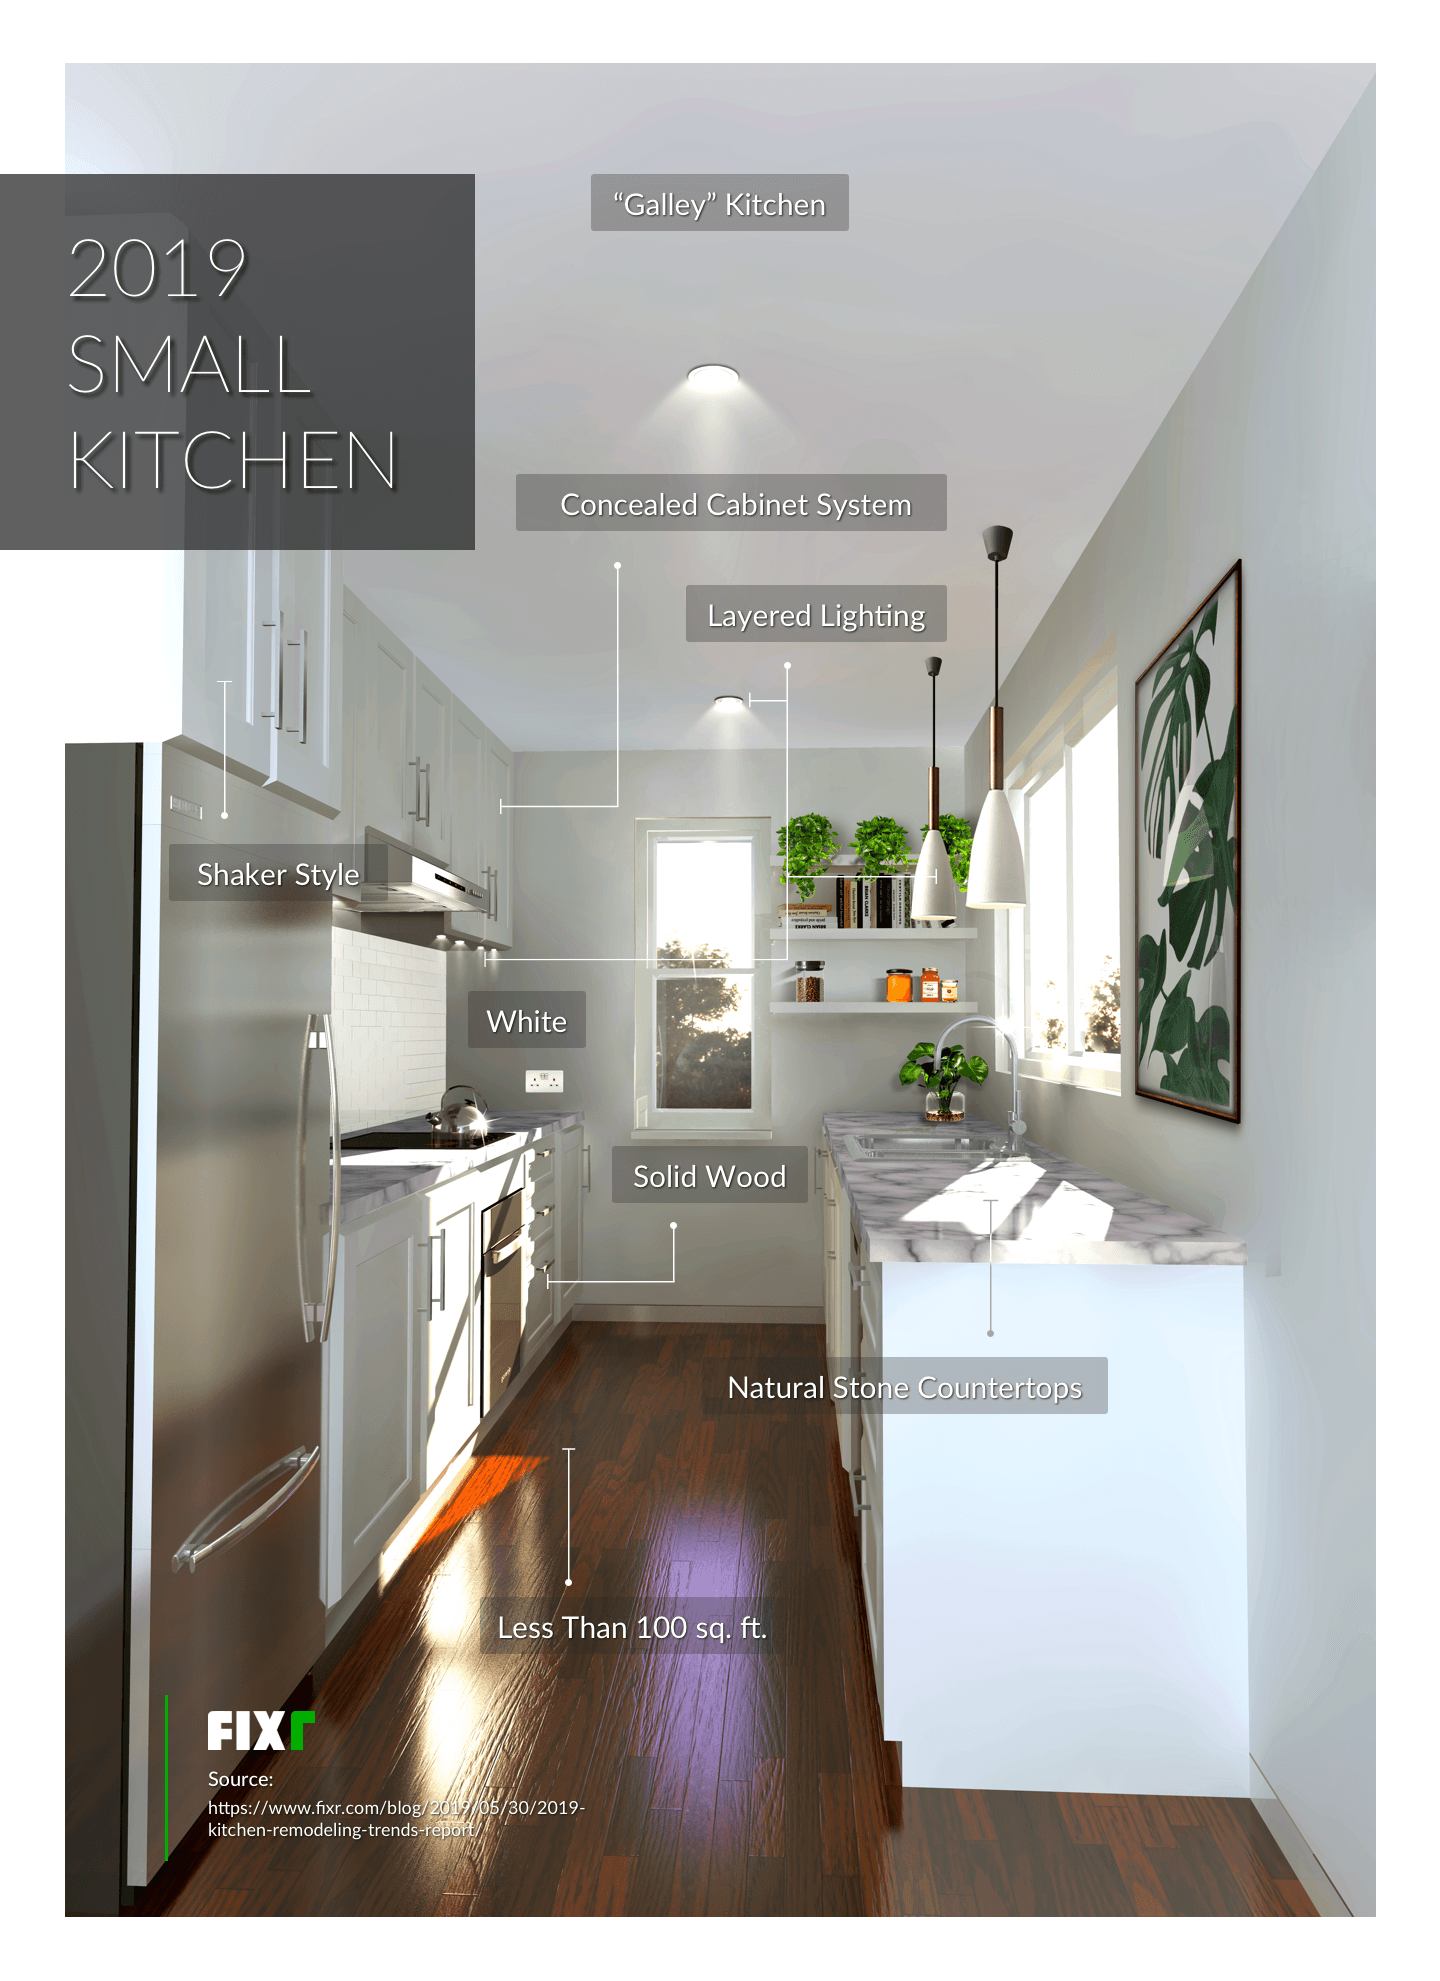 Visualizing The Most Popular Features Of A Small Kitchen In 2019